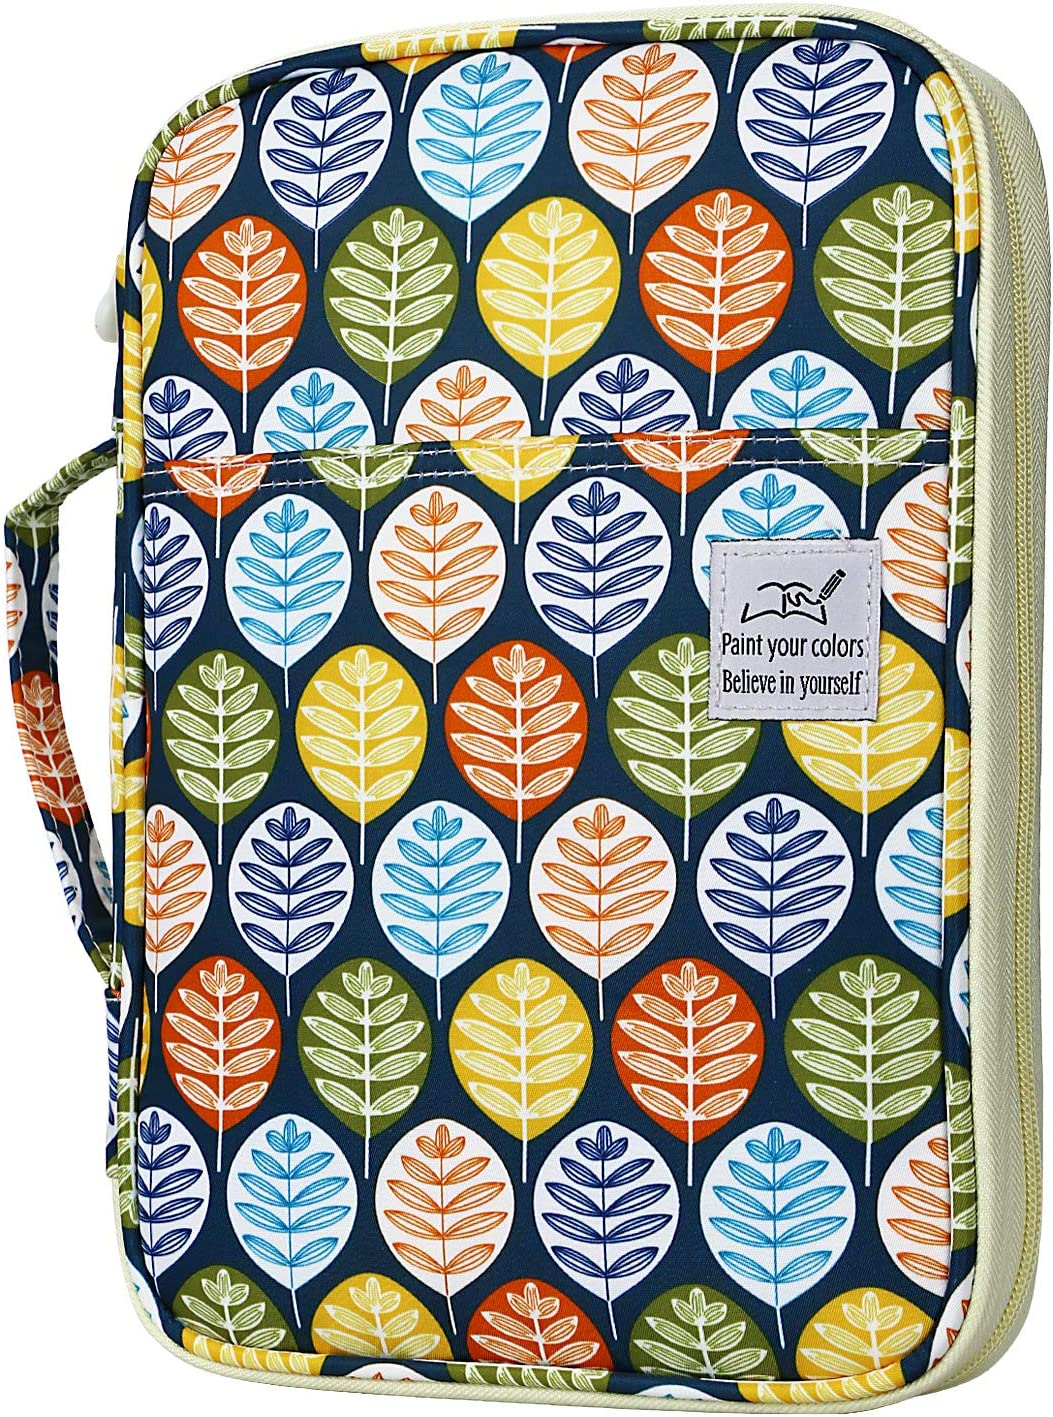 YOUSHARES 96 Slots Colored Pencil Case, Large Capacity Pencil Holder Pen Organizer Bag with Zipper for Prismacolor Watercolor Coloring Pencils, Gel Pens for Student & Artist (Colorful Leaves)